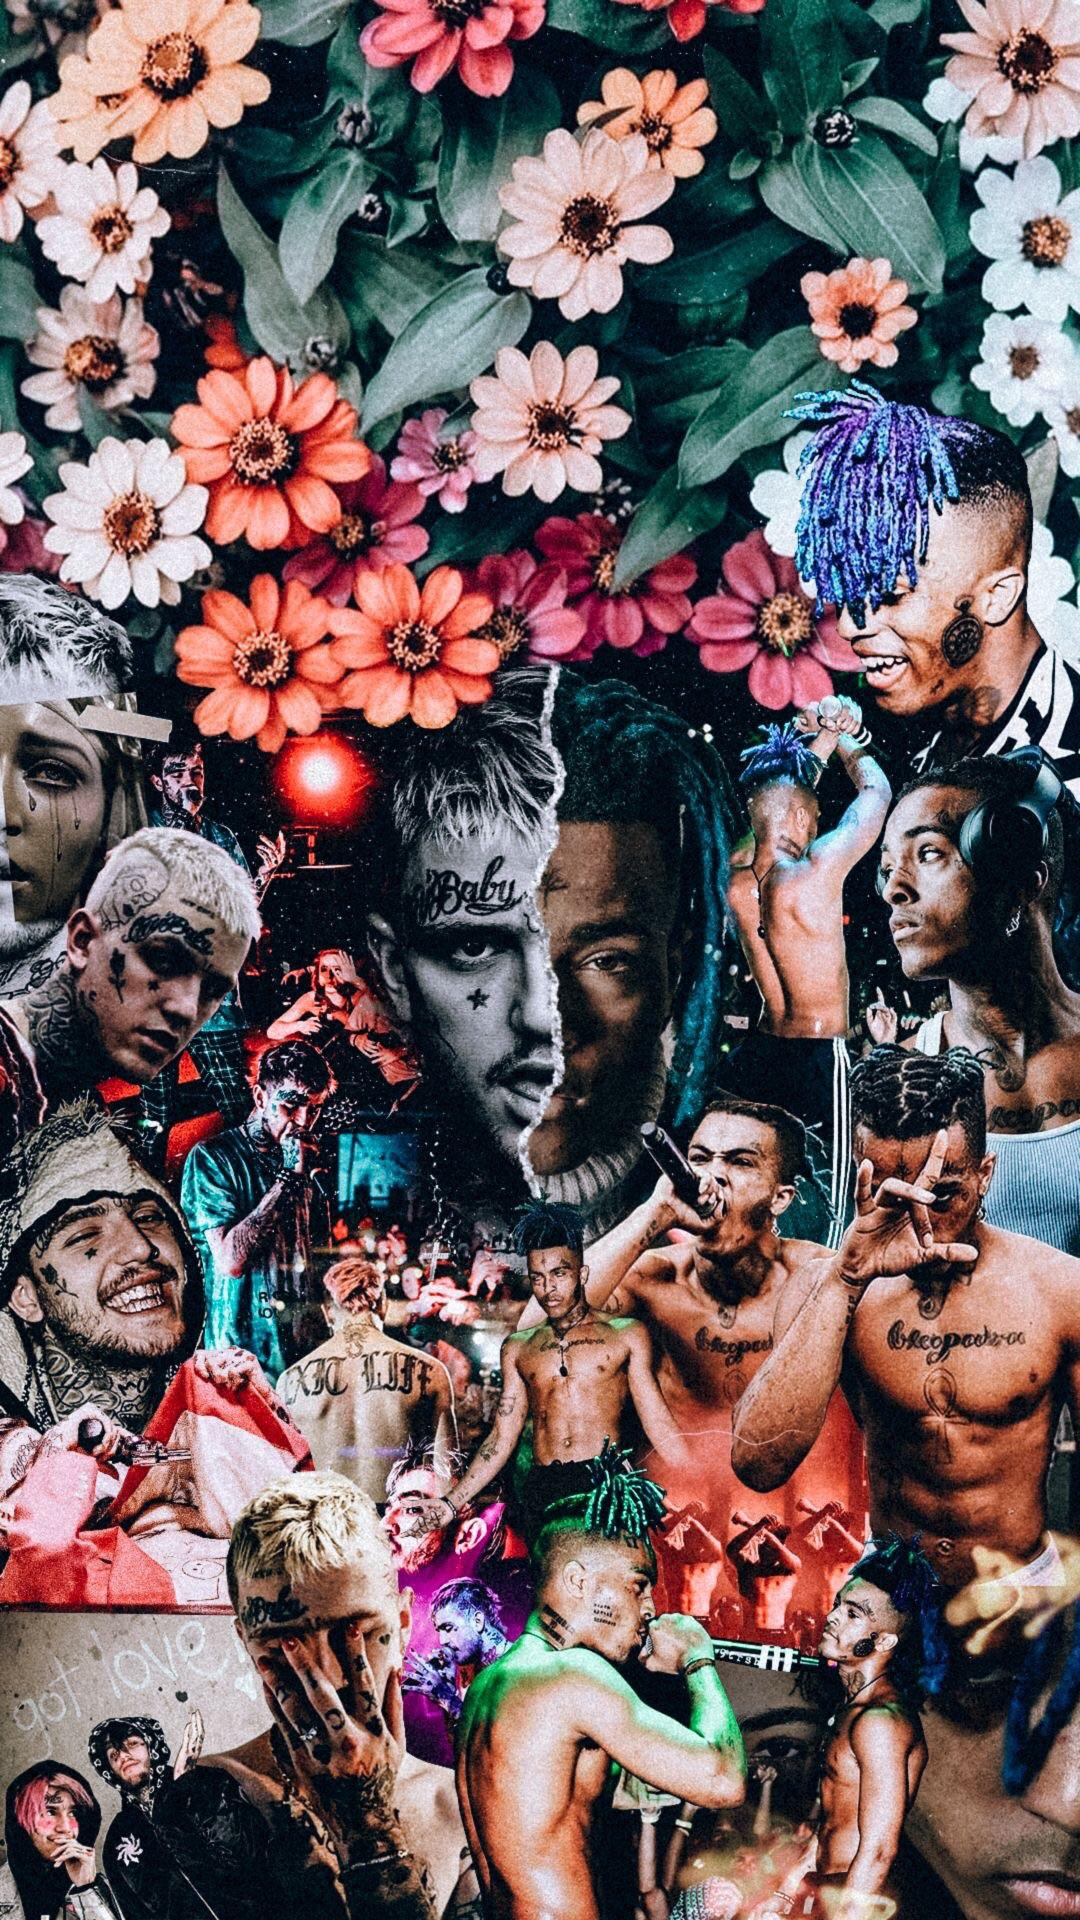 XXXTENTACION and LiL PeeP wallpaper Found this dope shit on 1080x1920